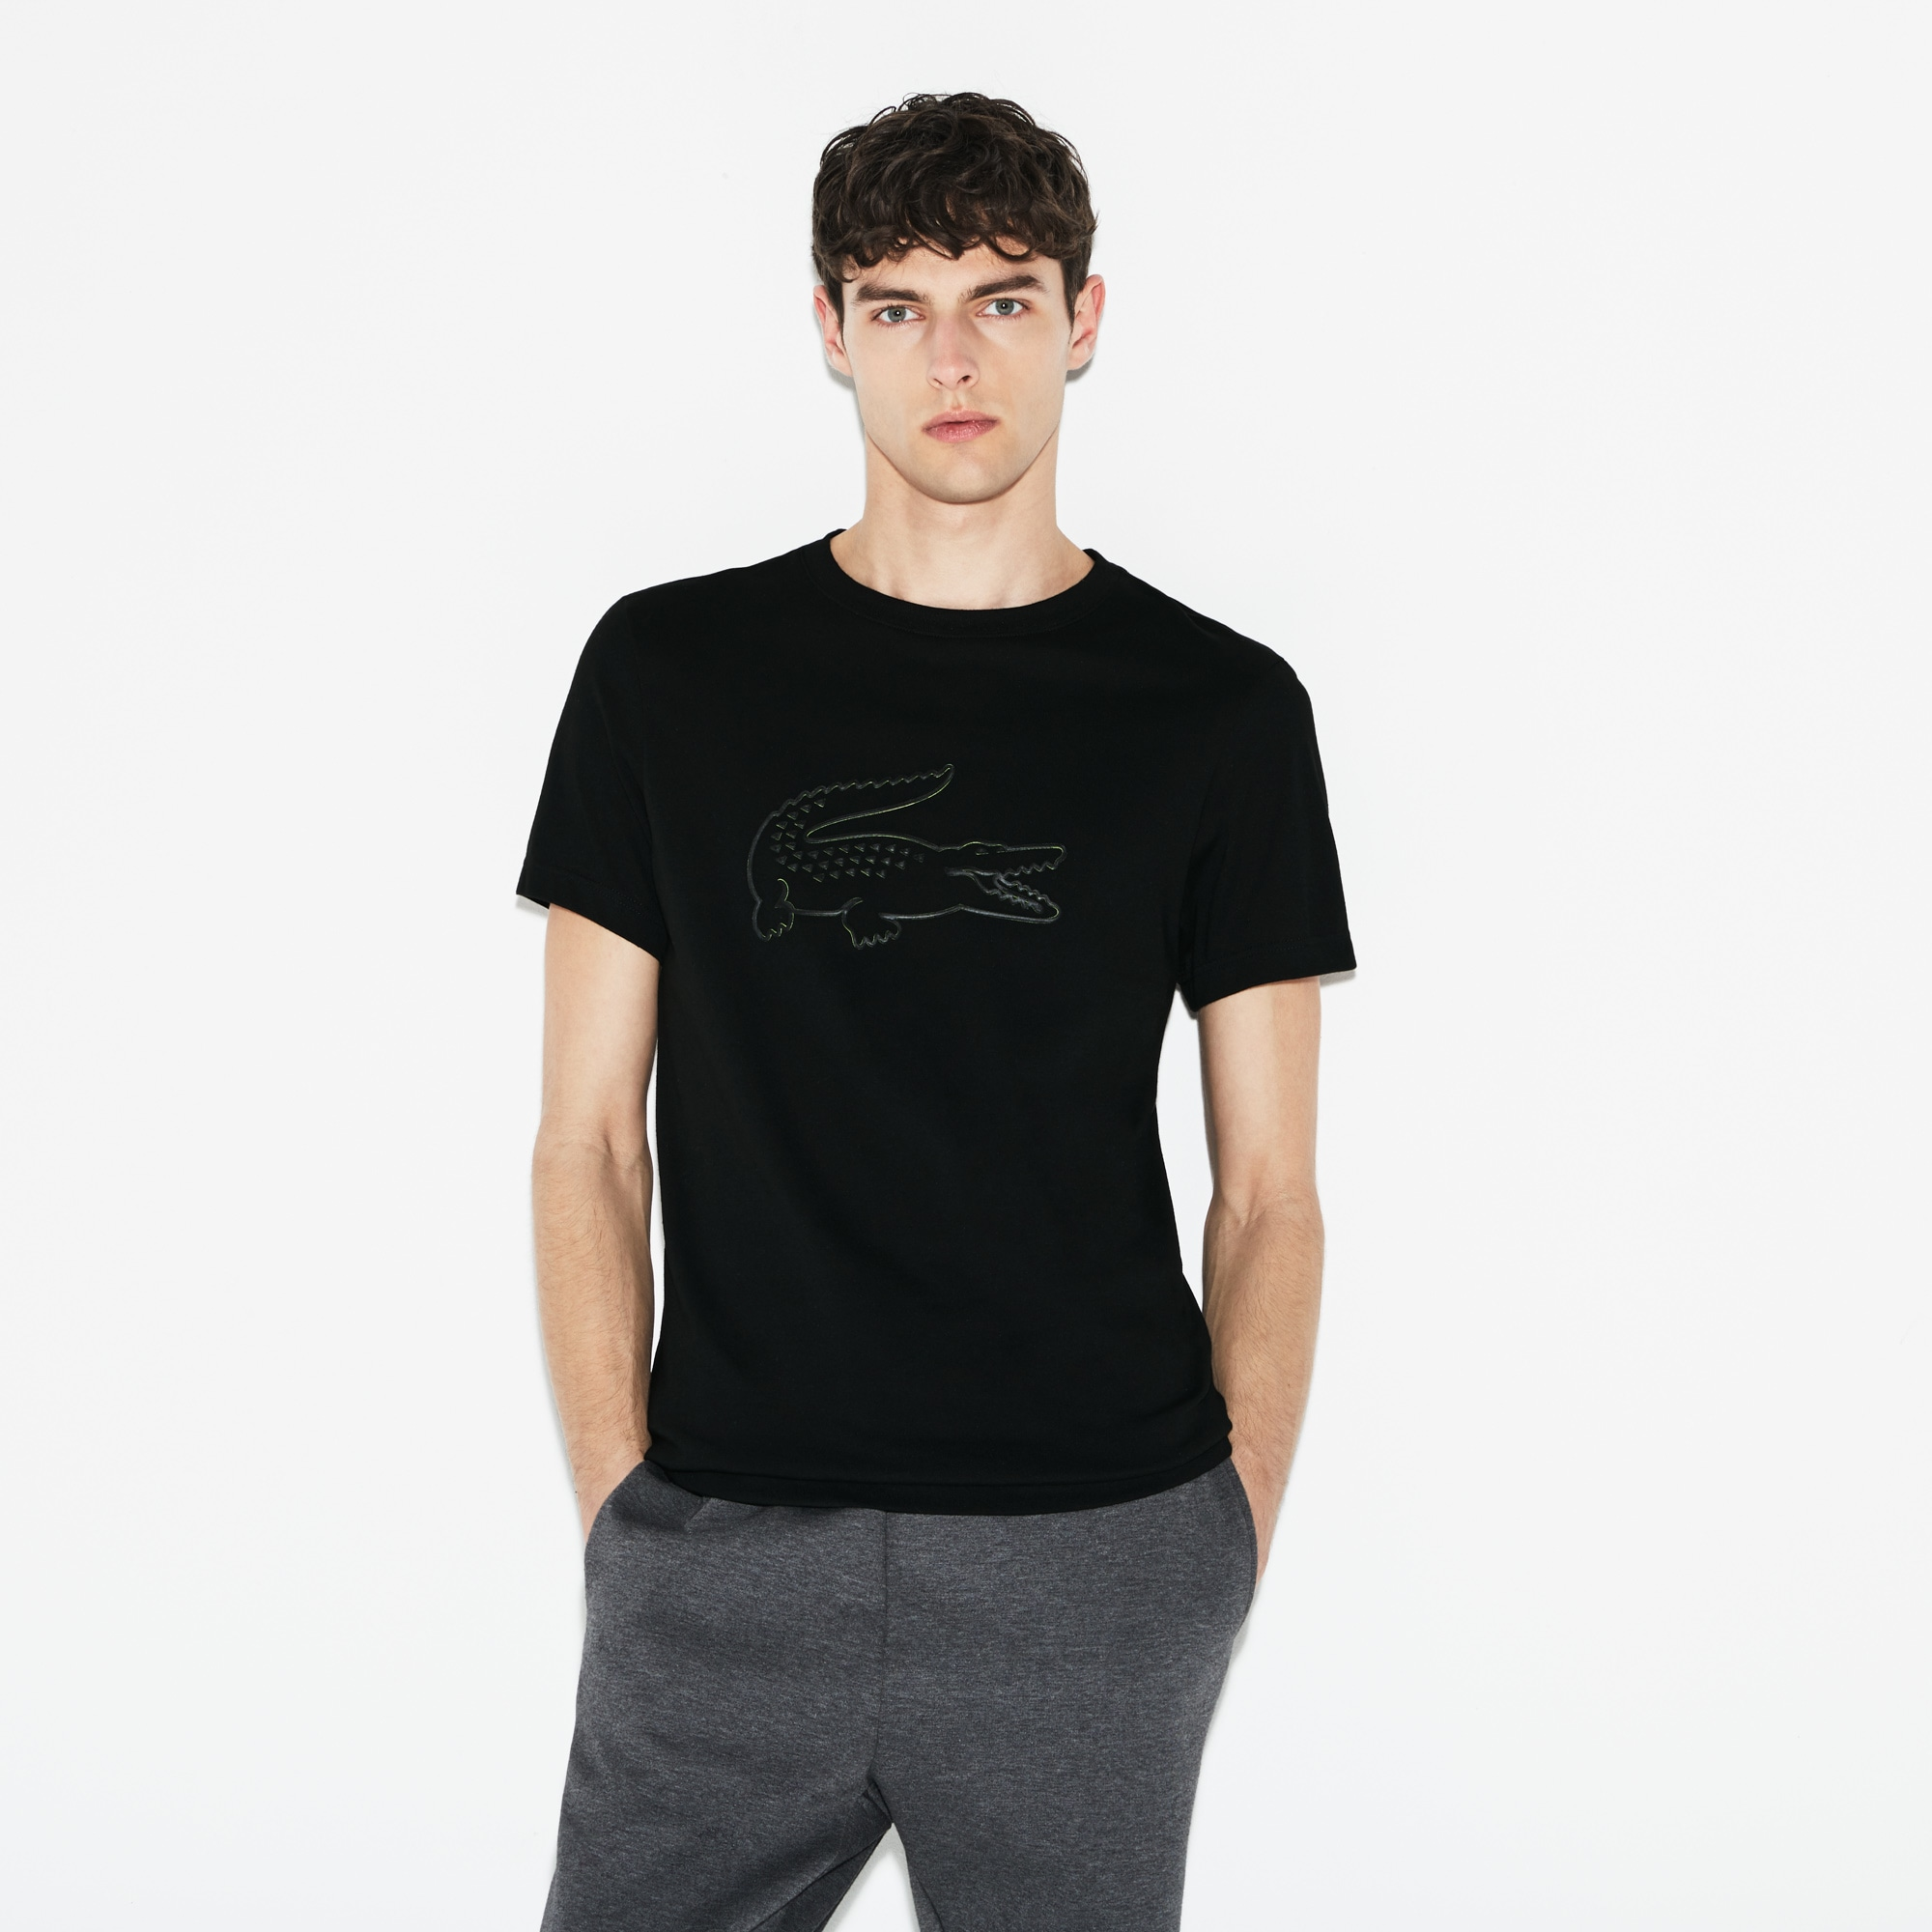 Men's SPORT Oversized Croc Tennis T-Shirt